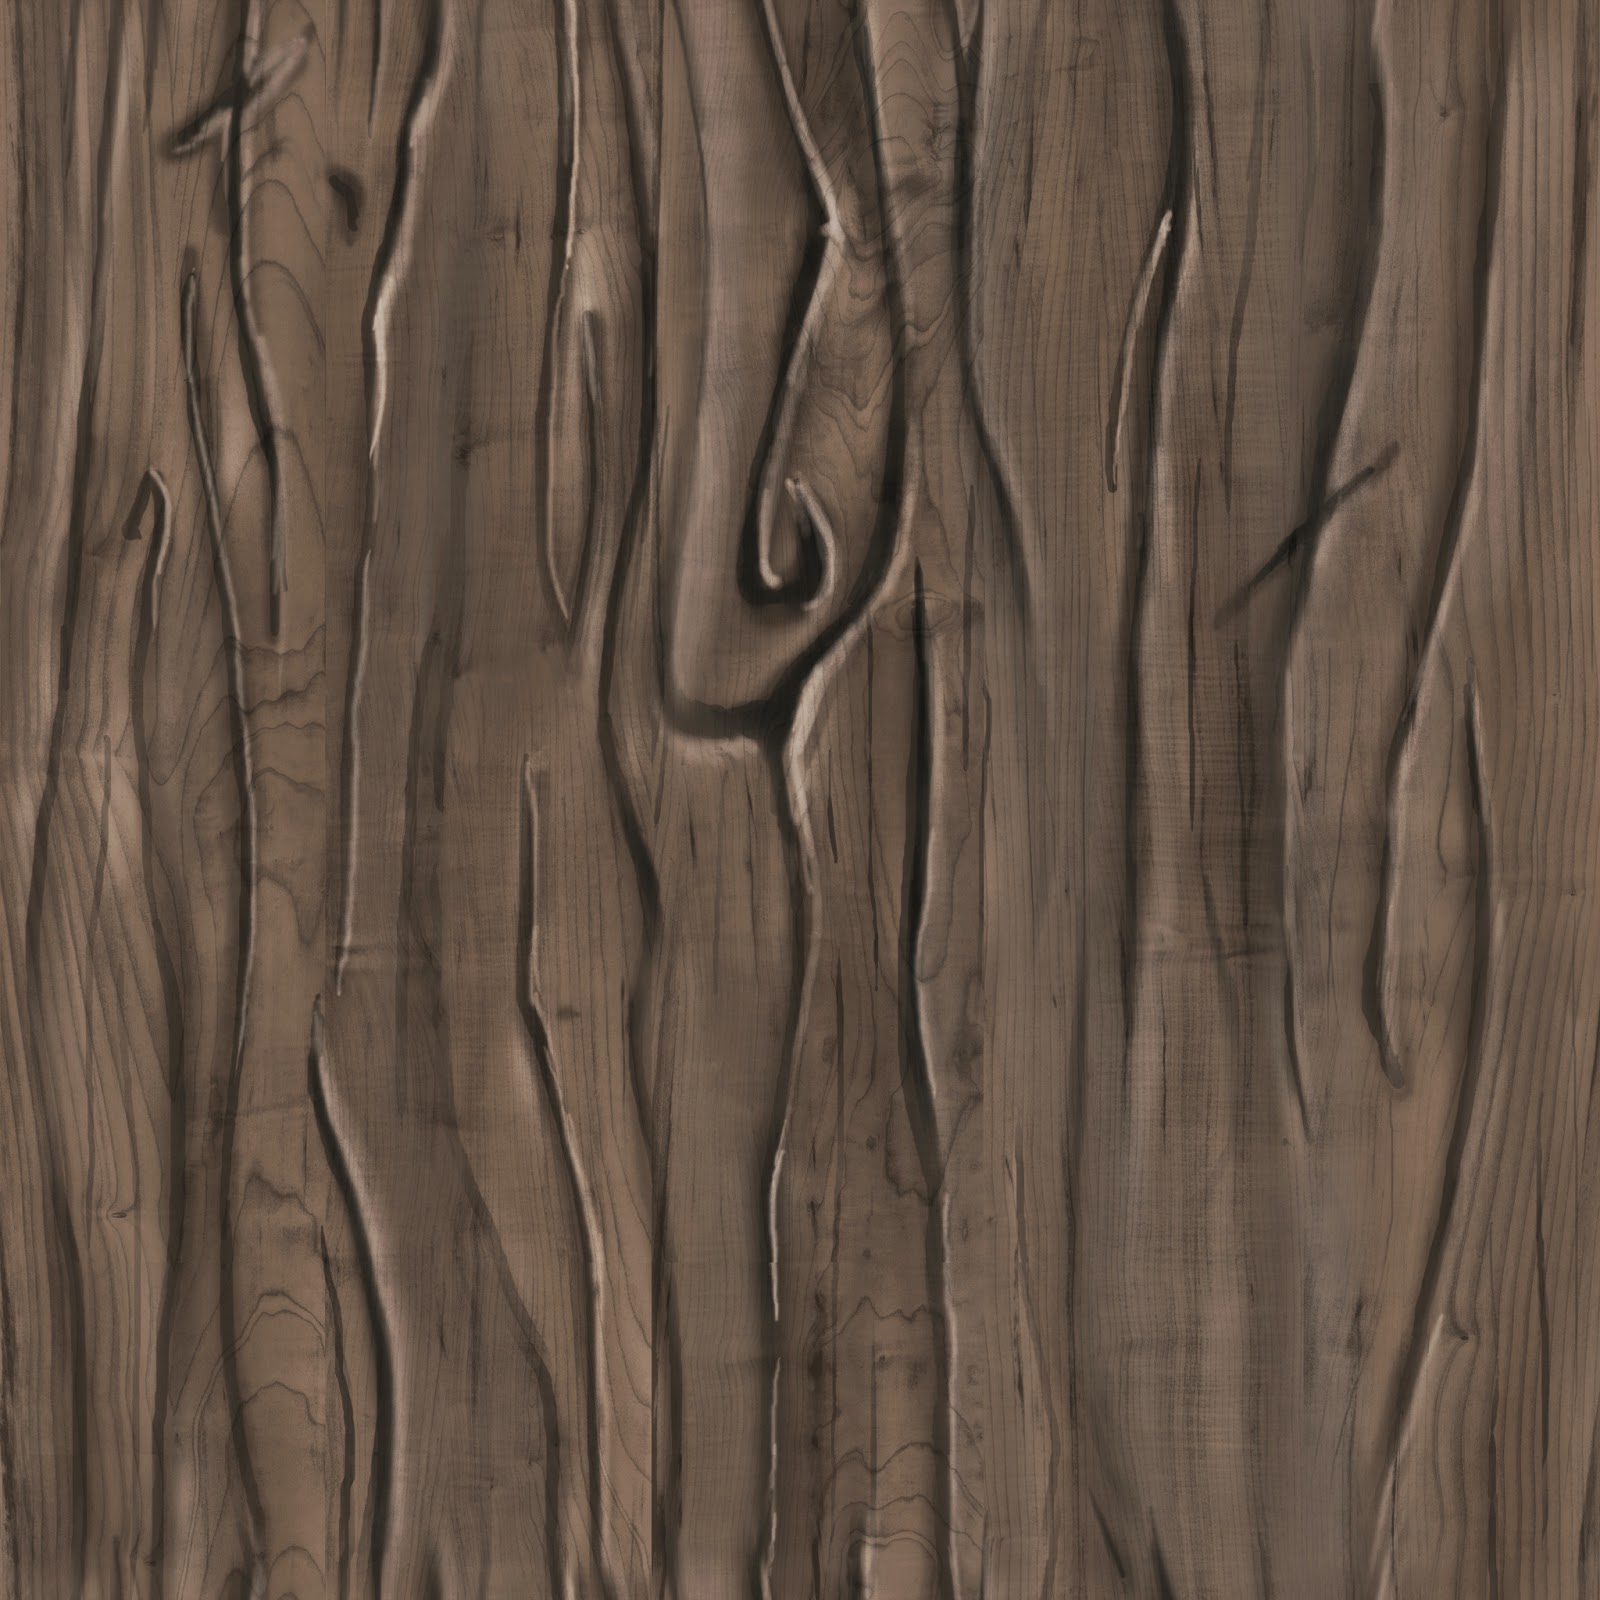 Jesses Art Sauce Hand Painted Seamless Wood Texture